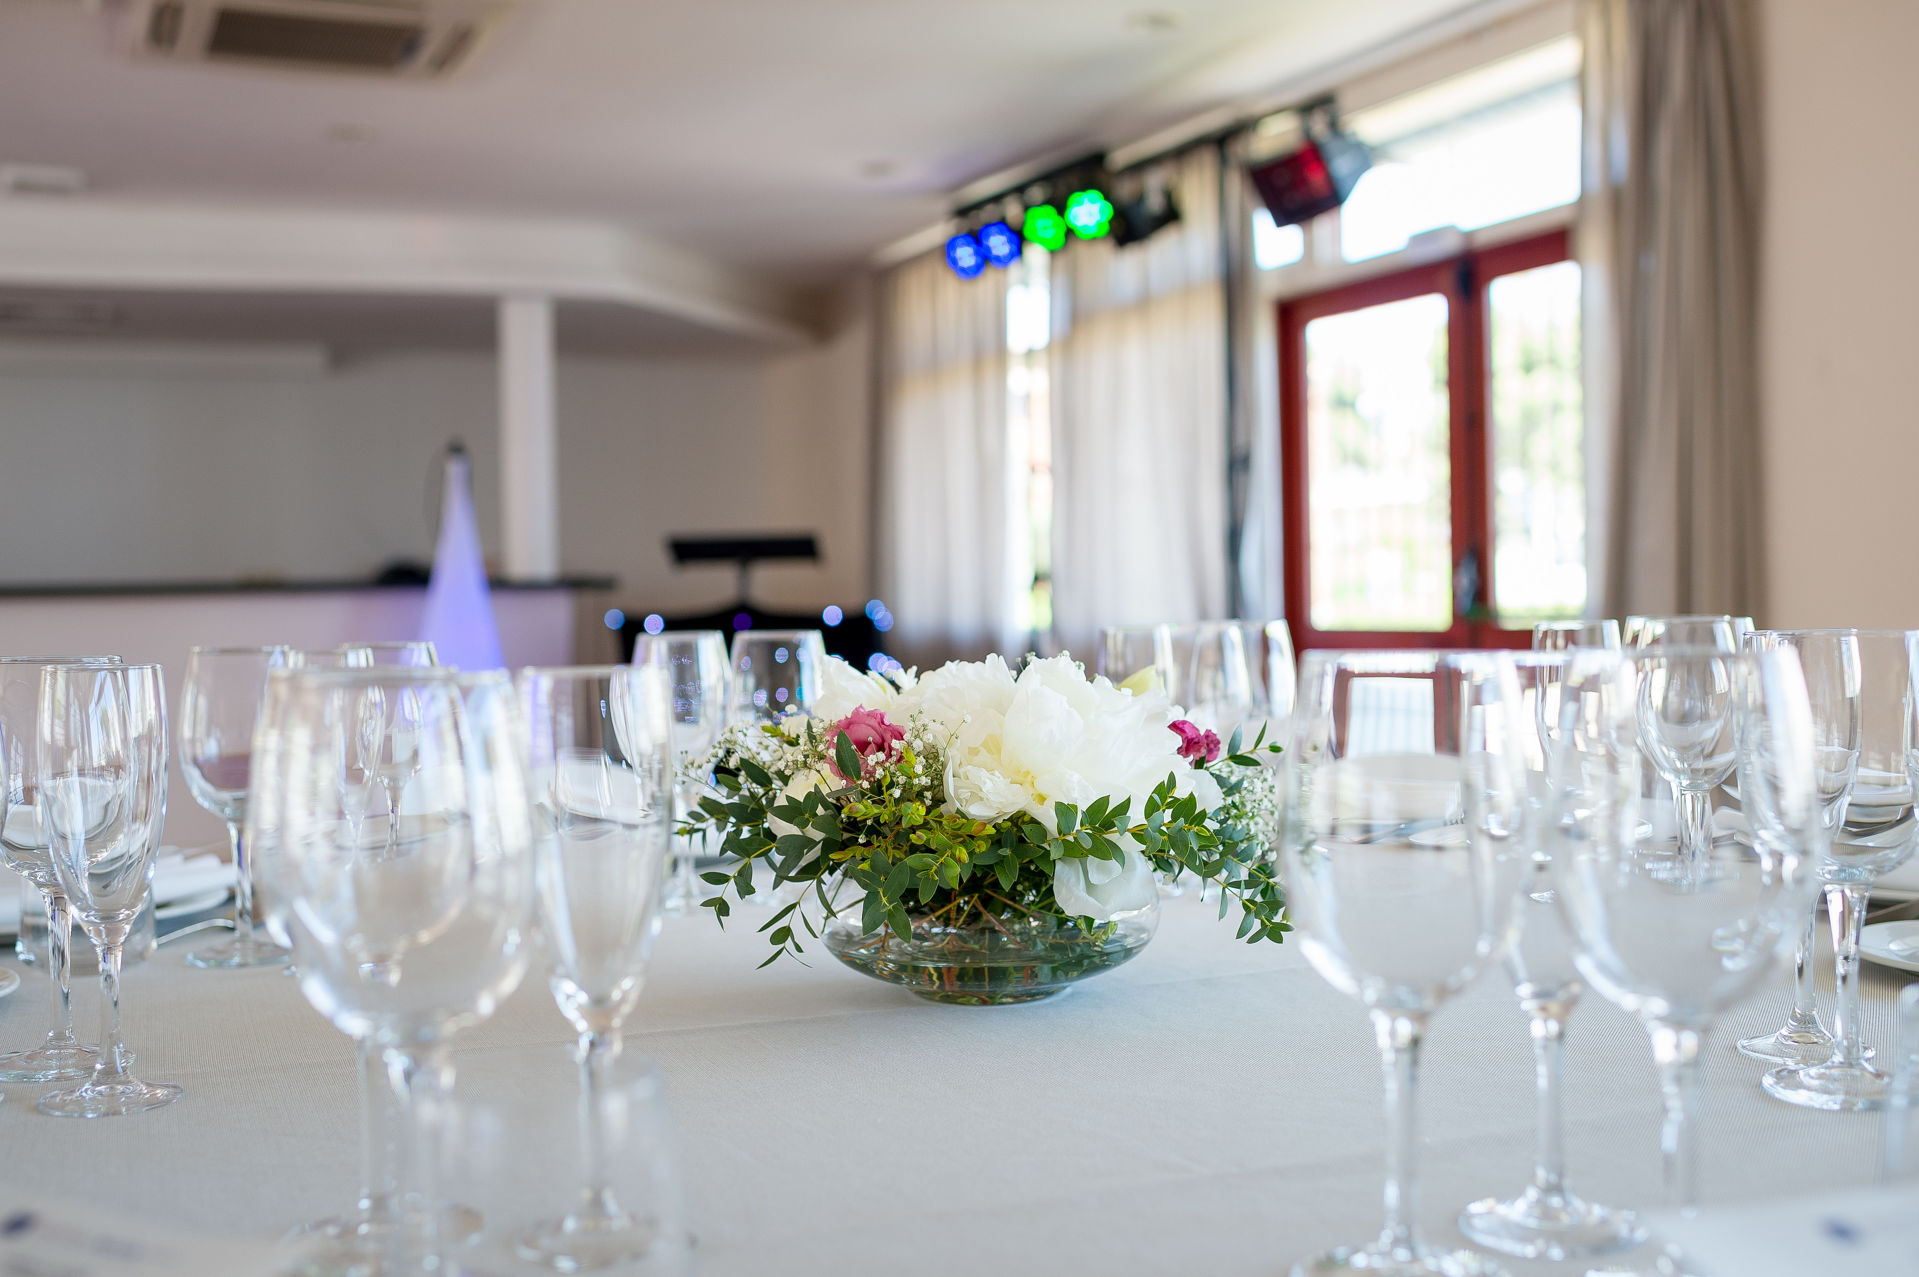 Our event rooms